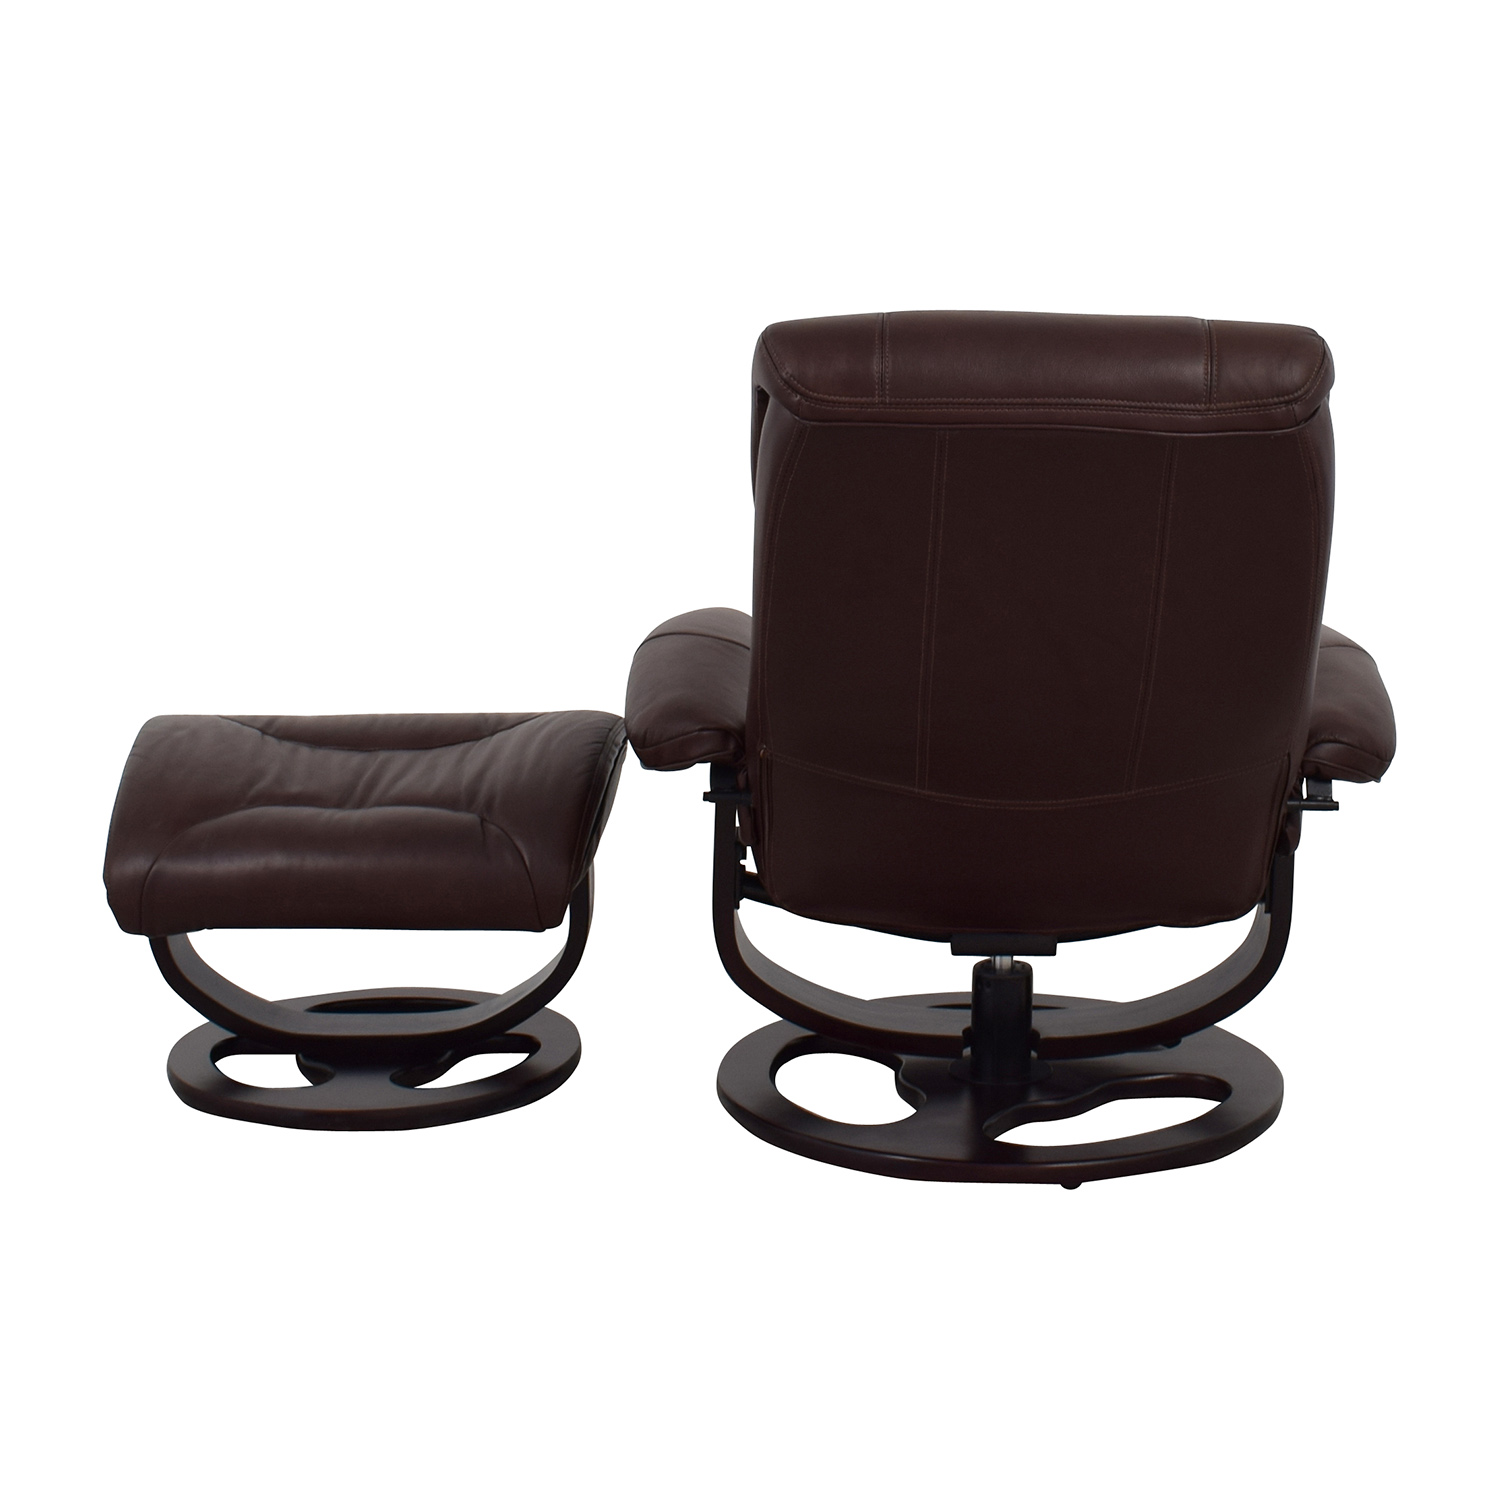 Leather Recliner Chair With Ottoman 59 Off Macy S Macy S Aby Brown Leather Recliner Chair Ottoman